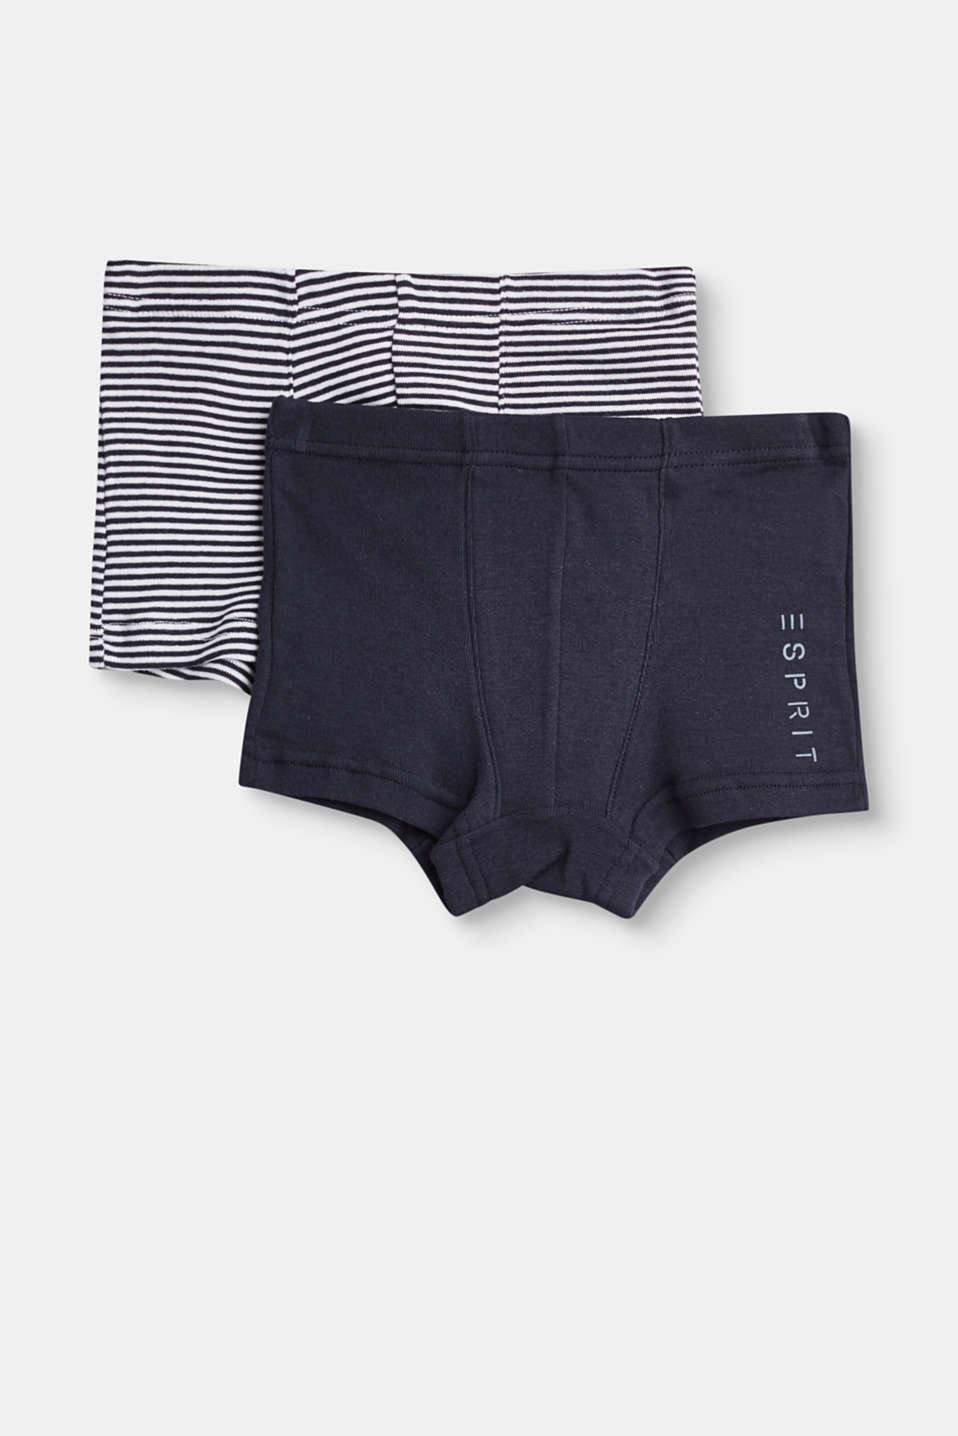 Esprit - two pairs of shorts in 100% cotton